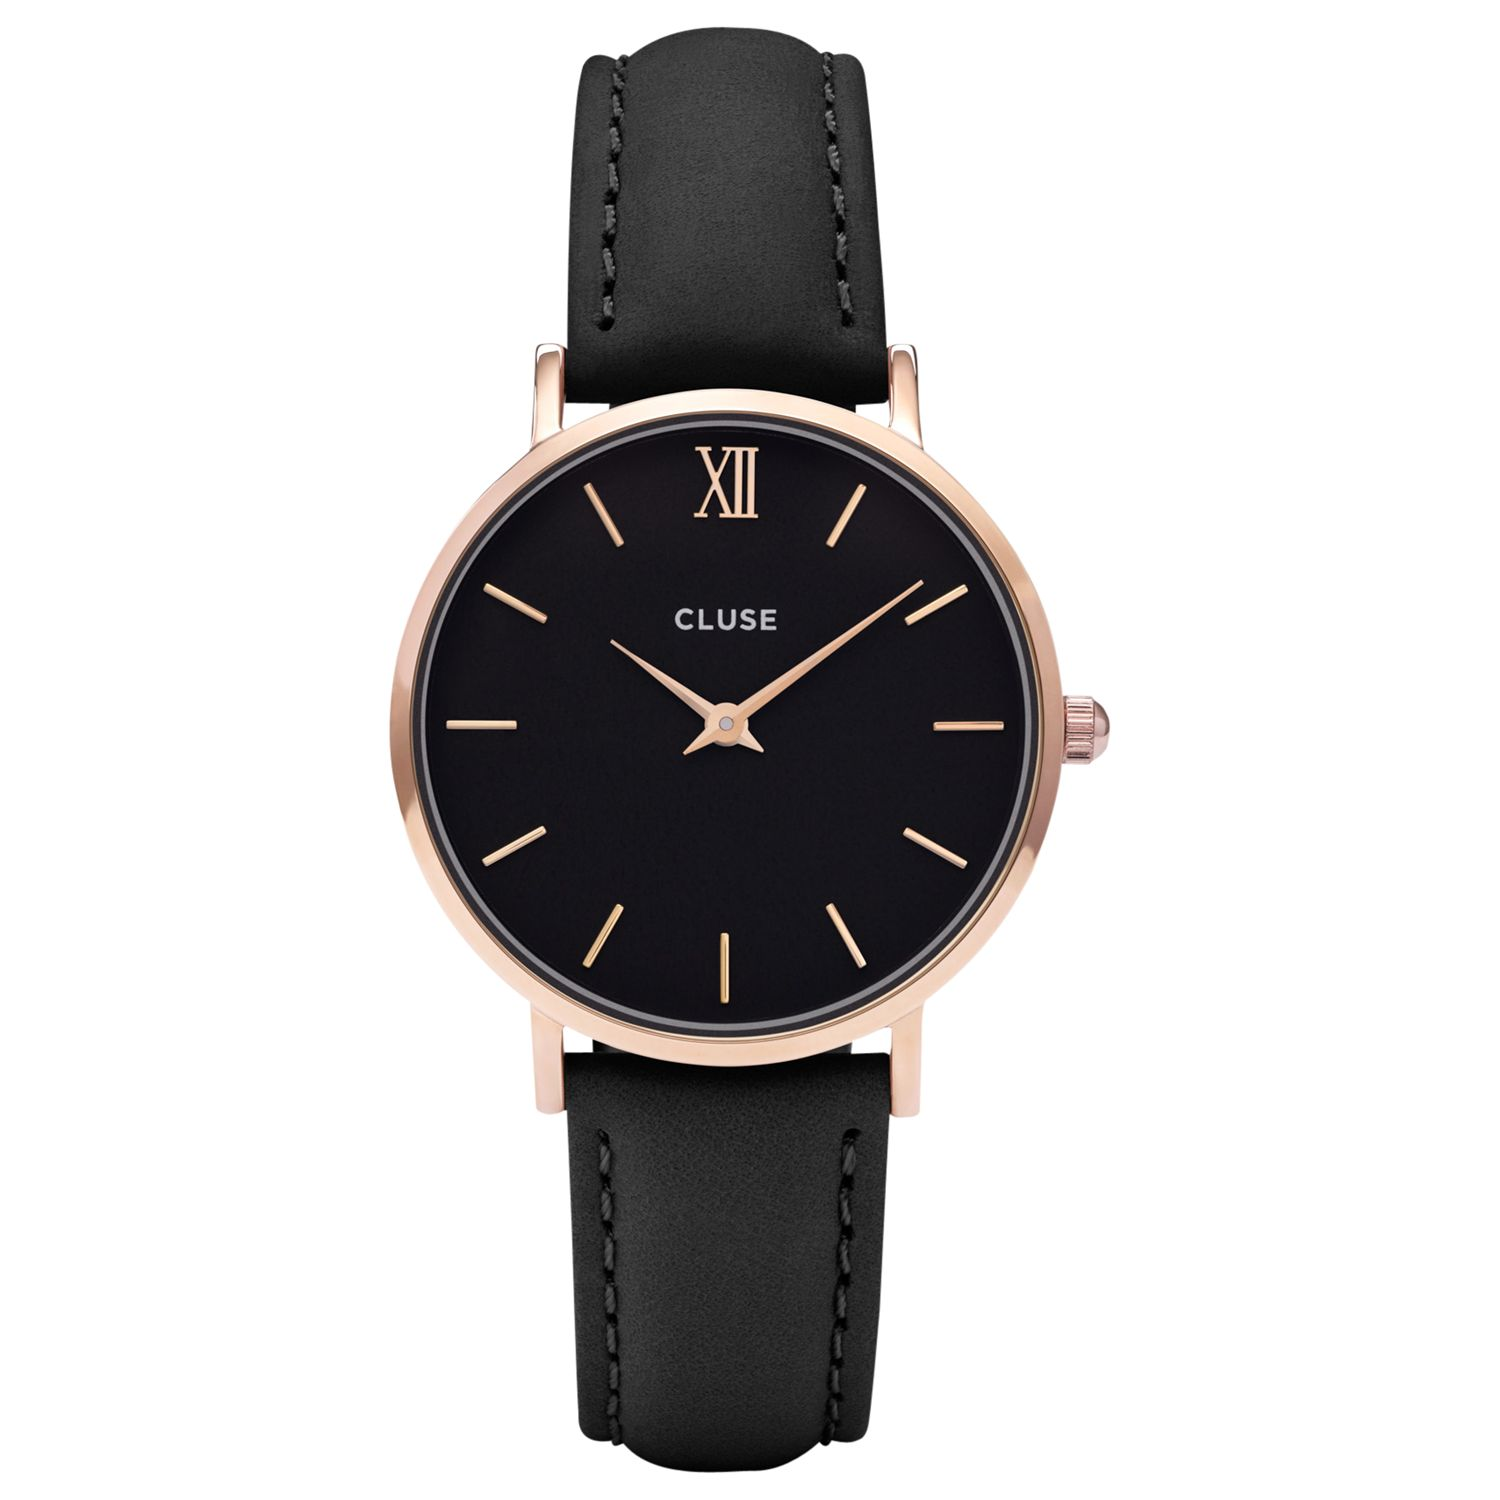 Cluse CLUSE CL30022 Women's Minuit Rose Gold Leather Strap Watch, Black